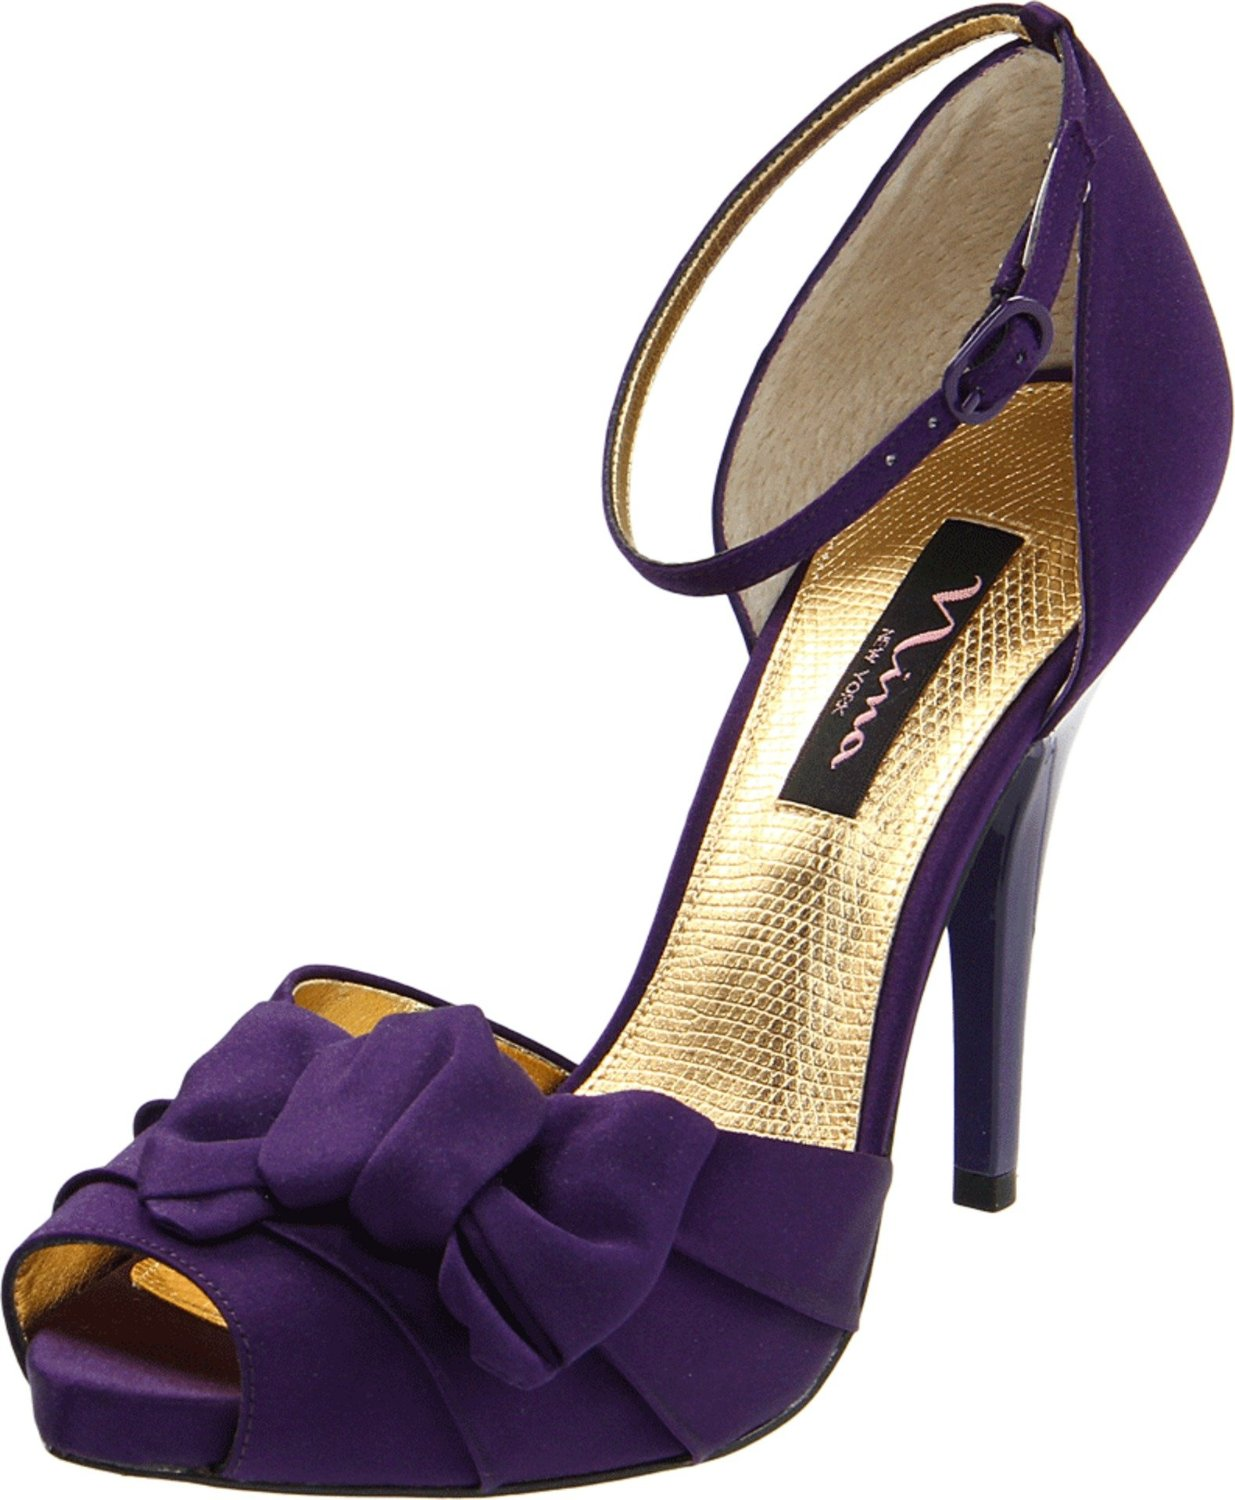 Purple Special Occasion Bridal, Prom, Grad Wedding Platform Pump Heels Shoe